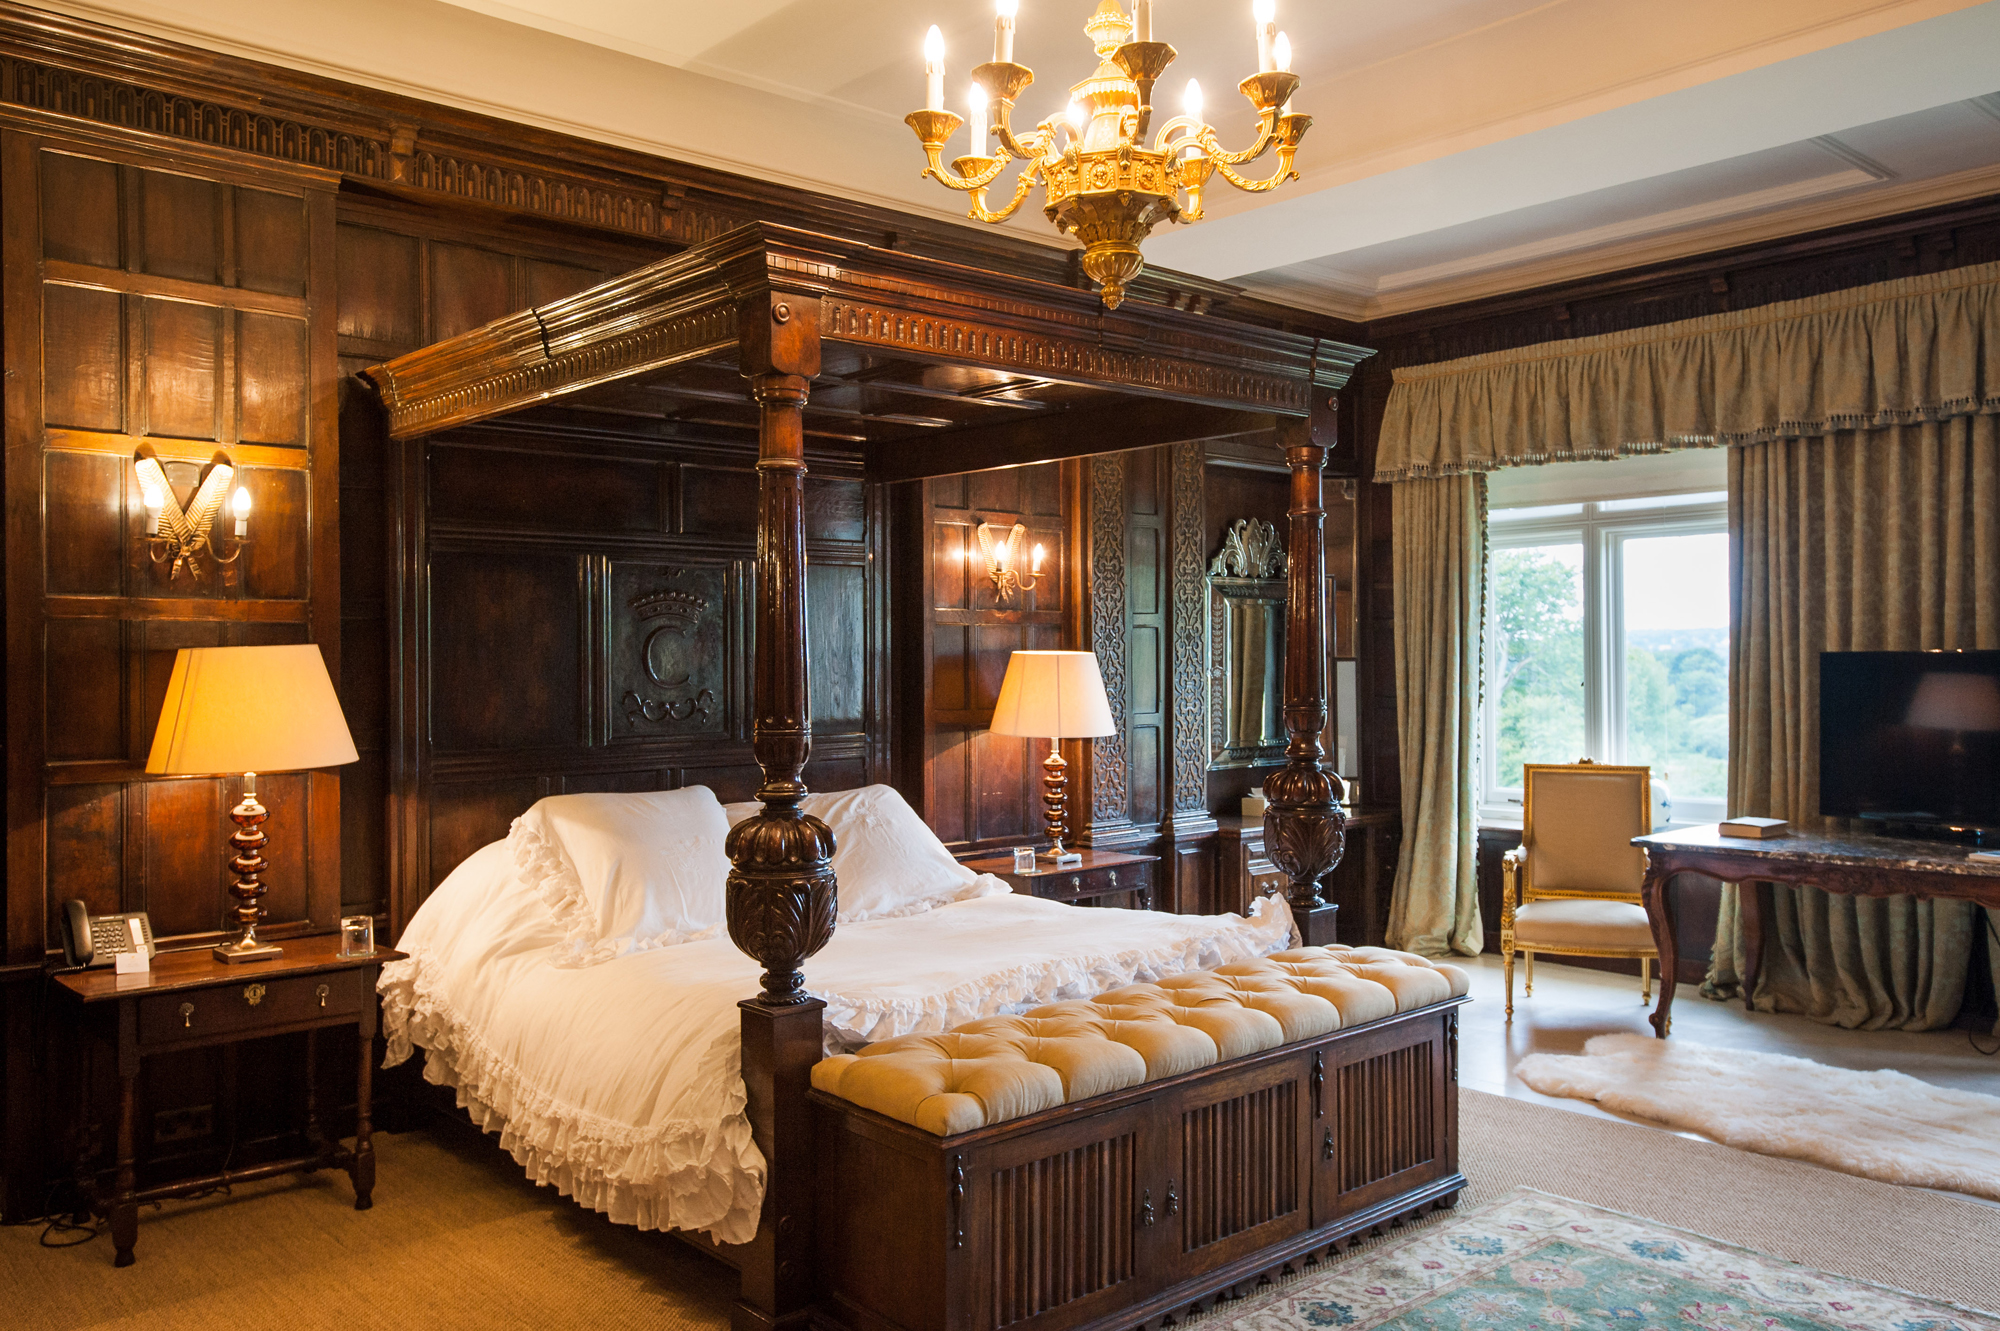 Event review Jaeger-LeCoultre International Gold Cup at Cowdray House bedrooms golden topaz english countryside